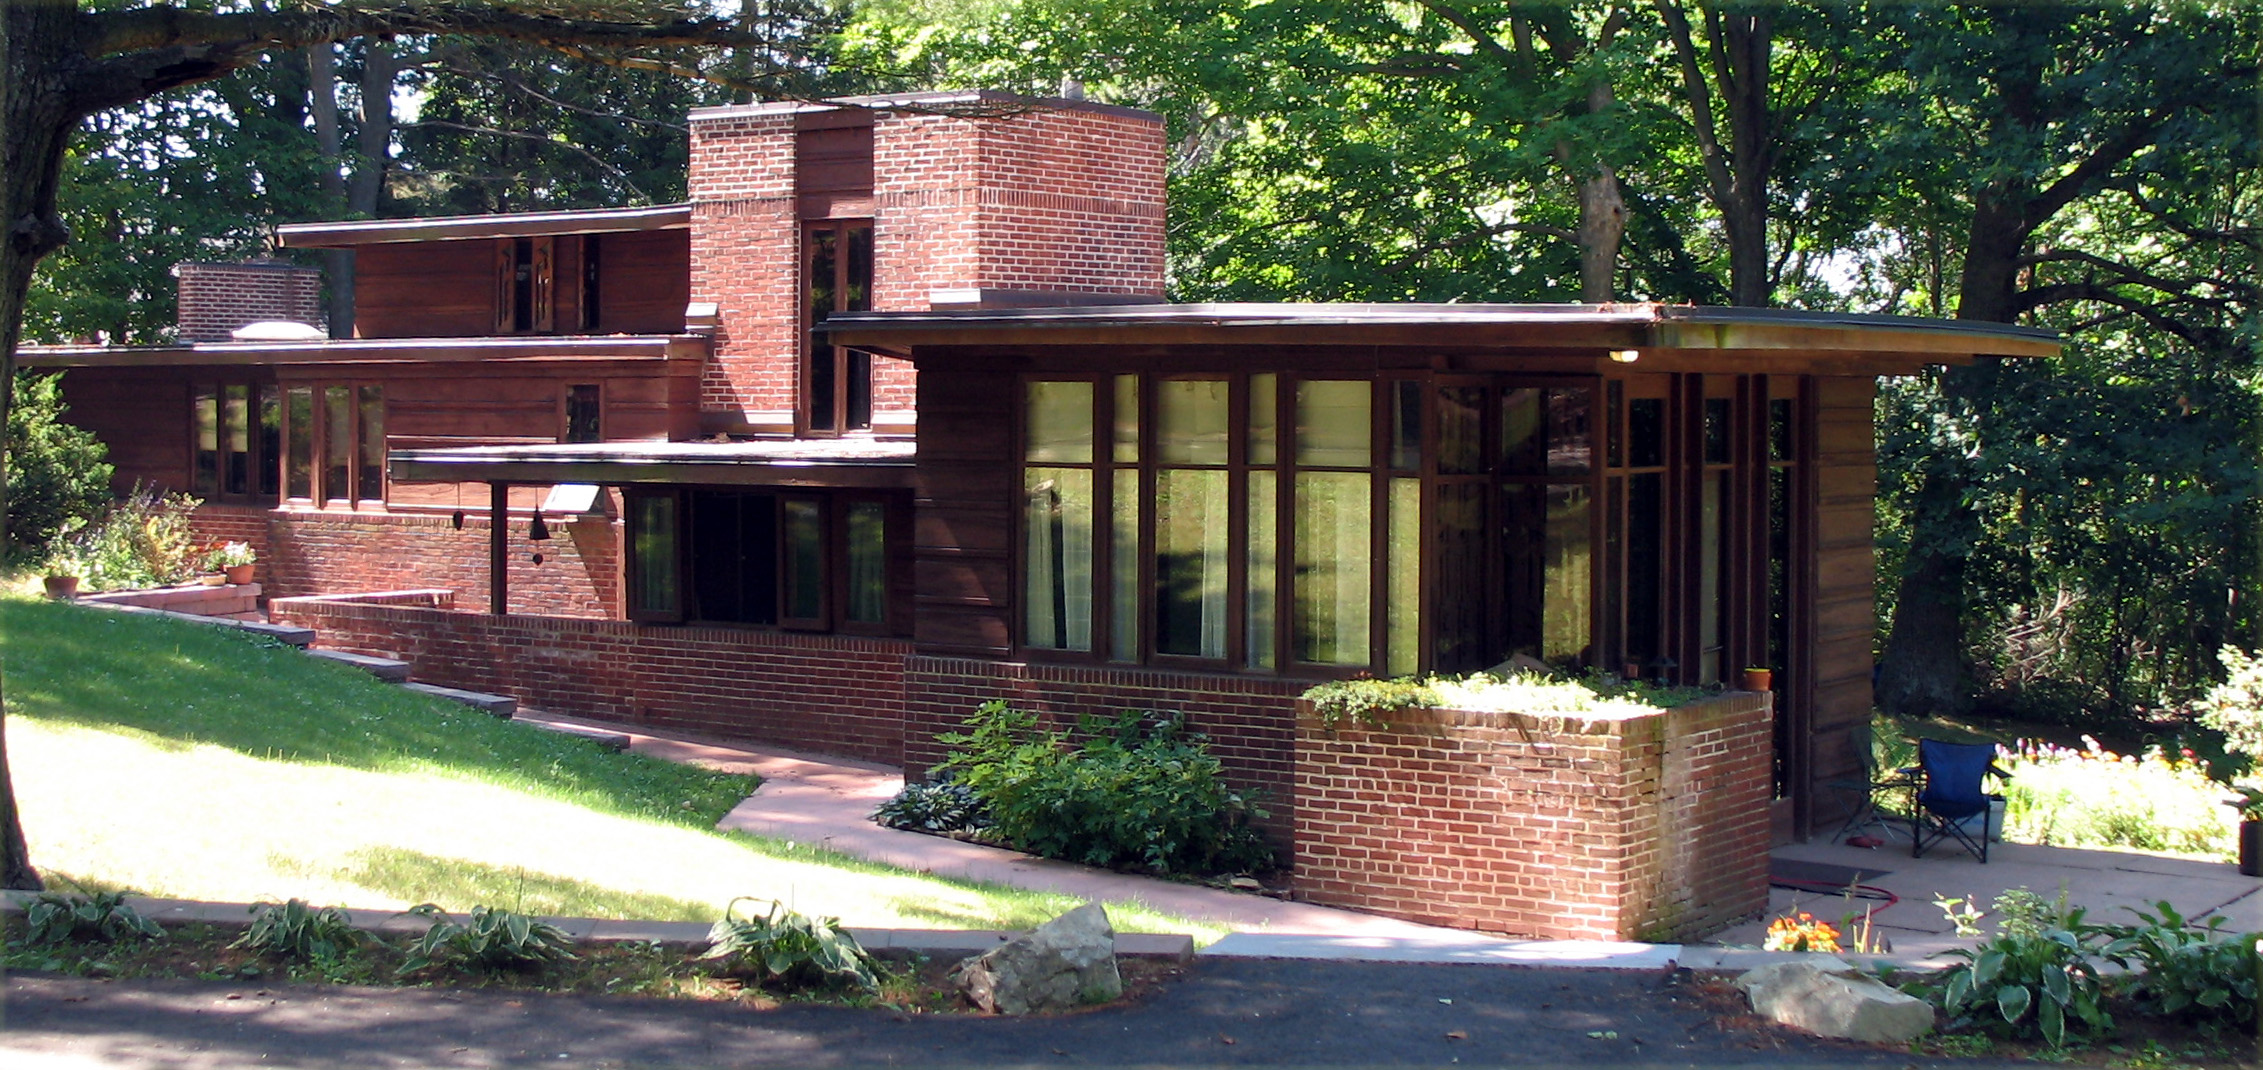 file:Frank-lloyd-wright-wausau.jpg - Wikipedia on el paso home designs, oregon home designs, maine home designs, richmond home designs, atlanta home designs, jacksonville home designs, santa barbara home designs, cincinnati home designs, charleston home designs, houston home designs, texas home designs,